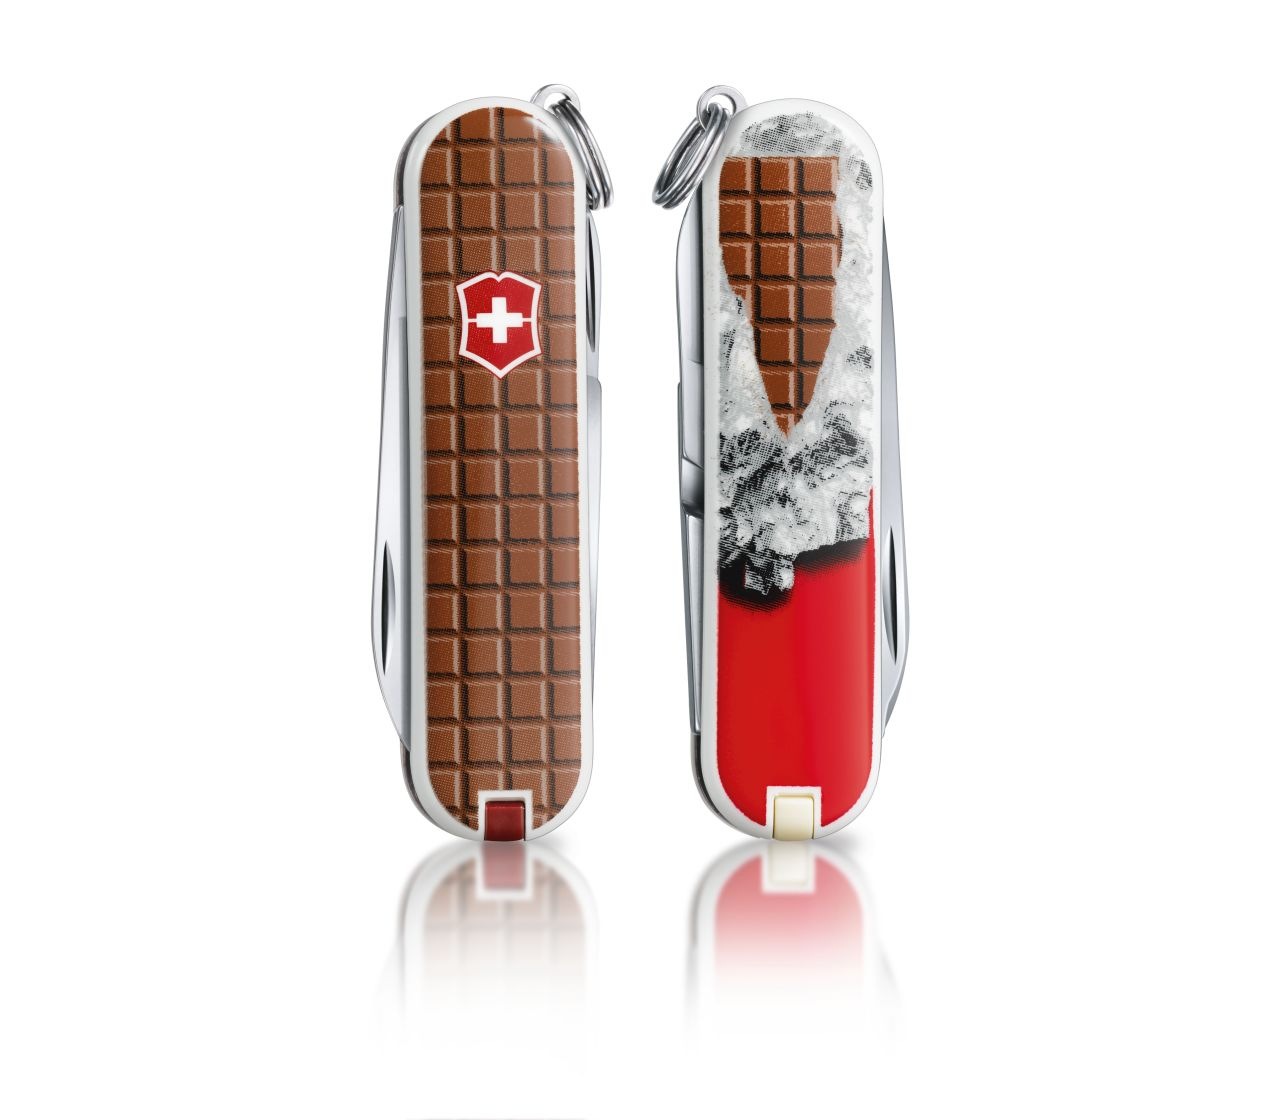 Victorinox Swiss Army Knife Classic Quot Chocolat Quot 0 6223 842